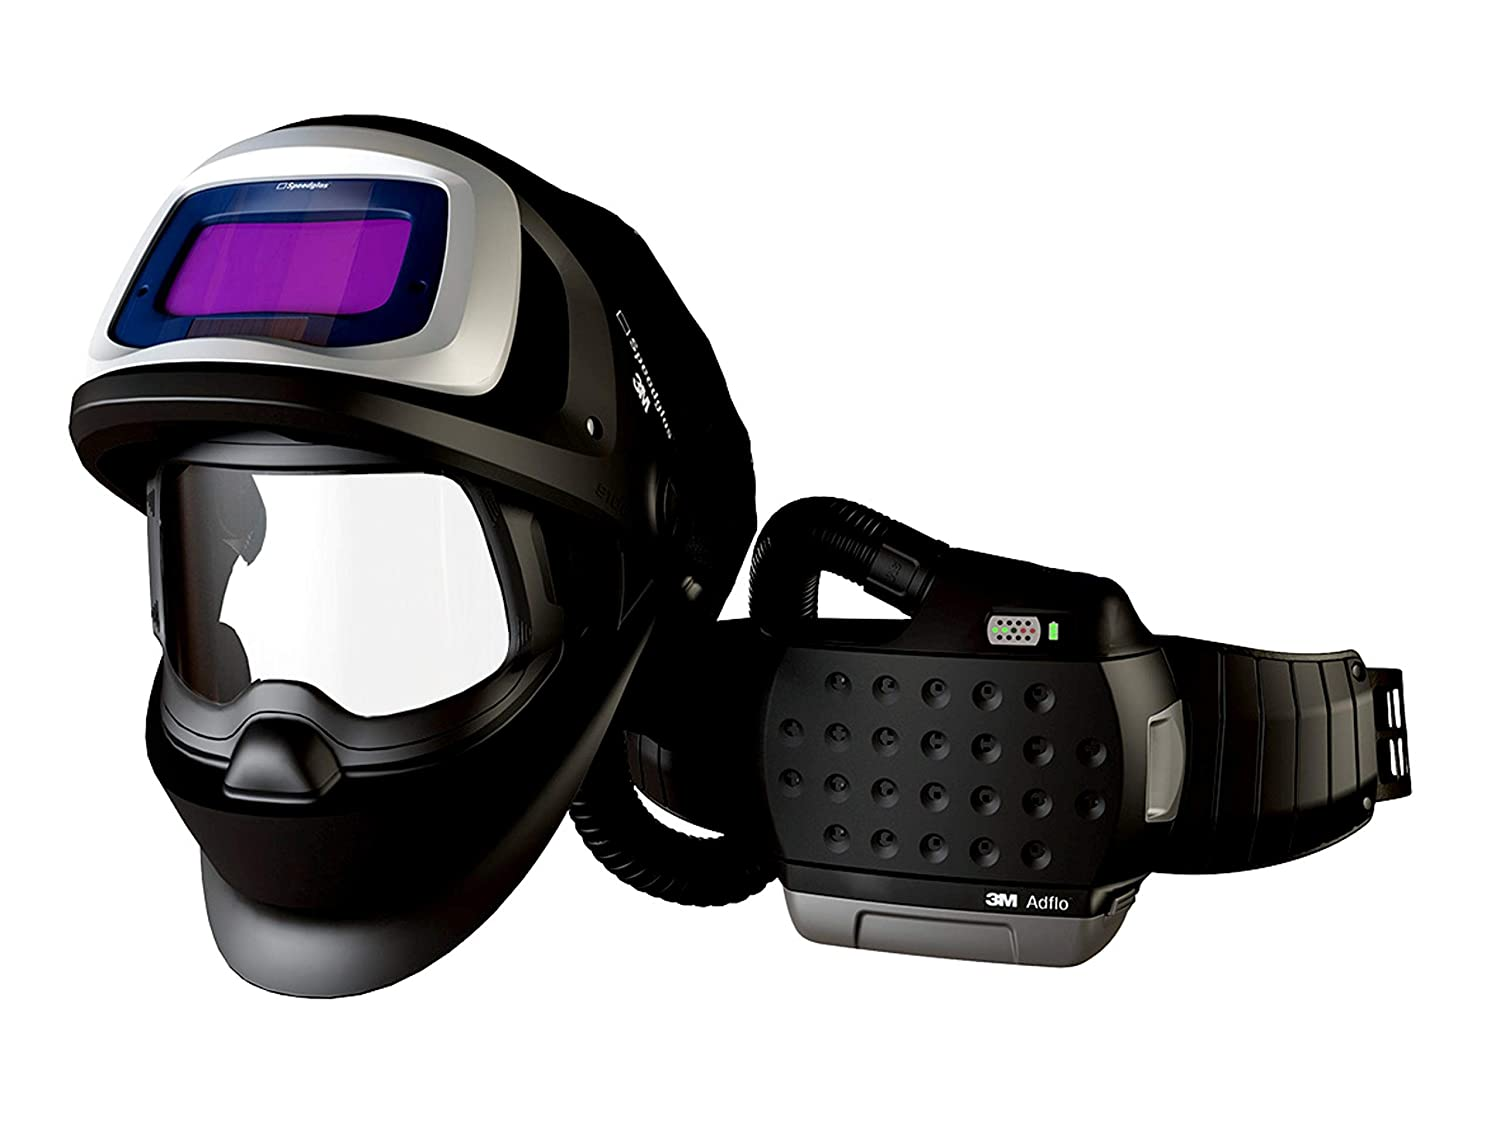 Image of Respirators 3M Adflo Powered Air Purifying Respirator He System with 3M Speedglas Welding Helmet 9100 Fx-Air, 36-1101-20Sw, 1 Ea/Case